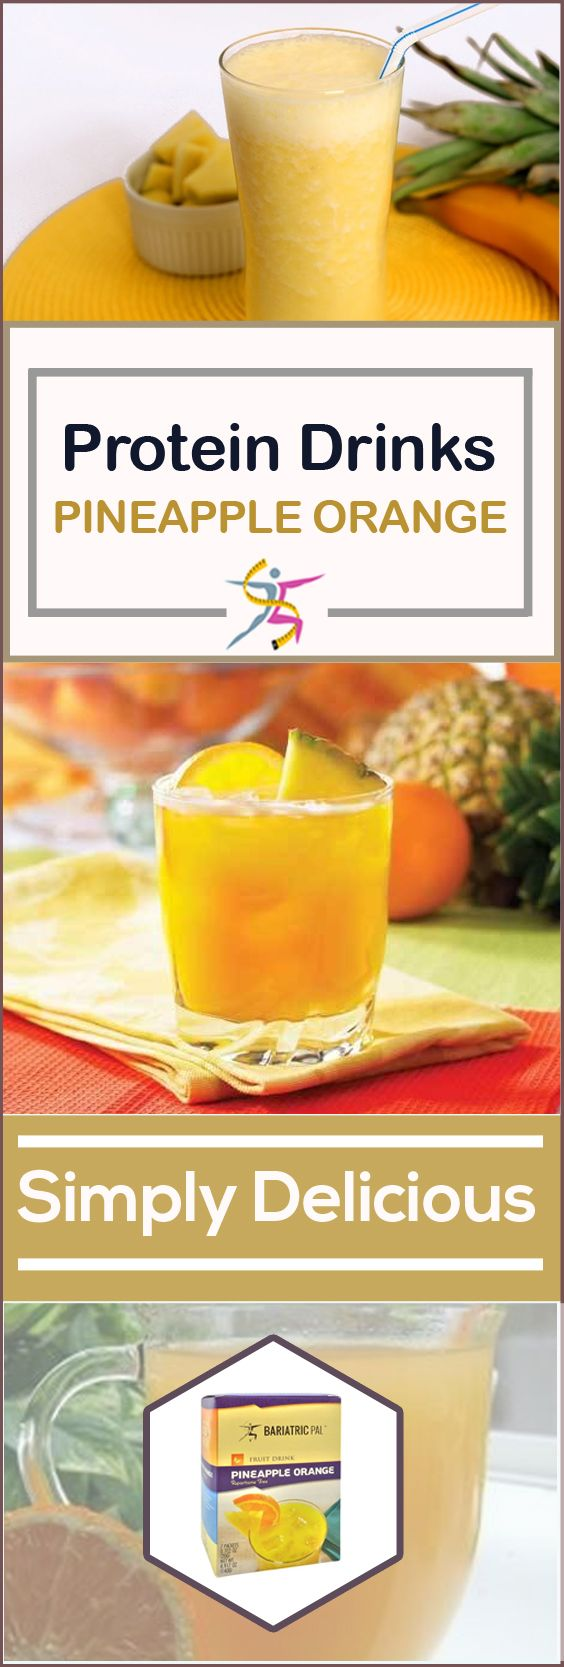 BariatricPal Fruit 15g Protein Drinks - Pineapple Orange:A fruit smoothie can land you in trouble with the sugar and calories, but you can also choose a high-protein BariatricPal Ready to Shake Instant Protein Drink – Pineapple Orange instead. It has 15 grams of protein plus vitamins and minerals, so you can use it as a meal replacement or a snack. It tastes so good and is so satisfying, you'd never guess it only has 70 calories.For those times when you need protein now and need a conv